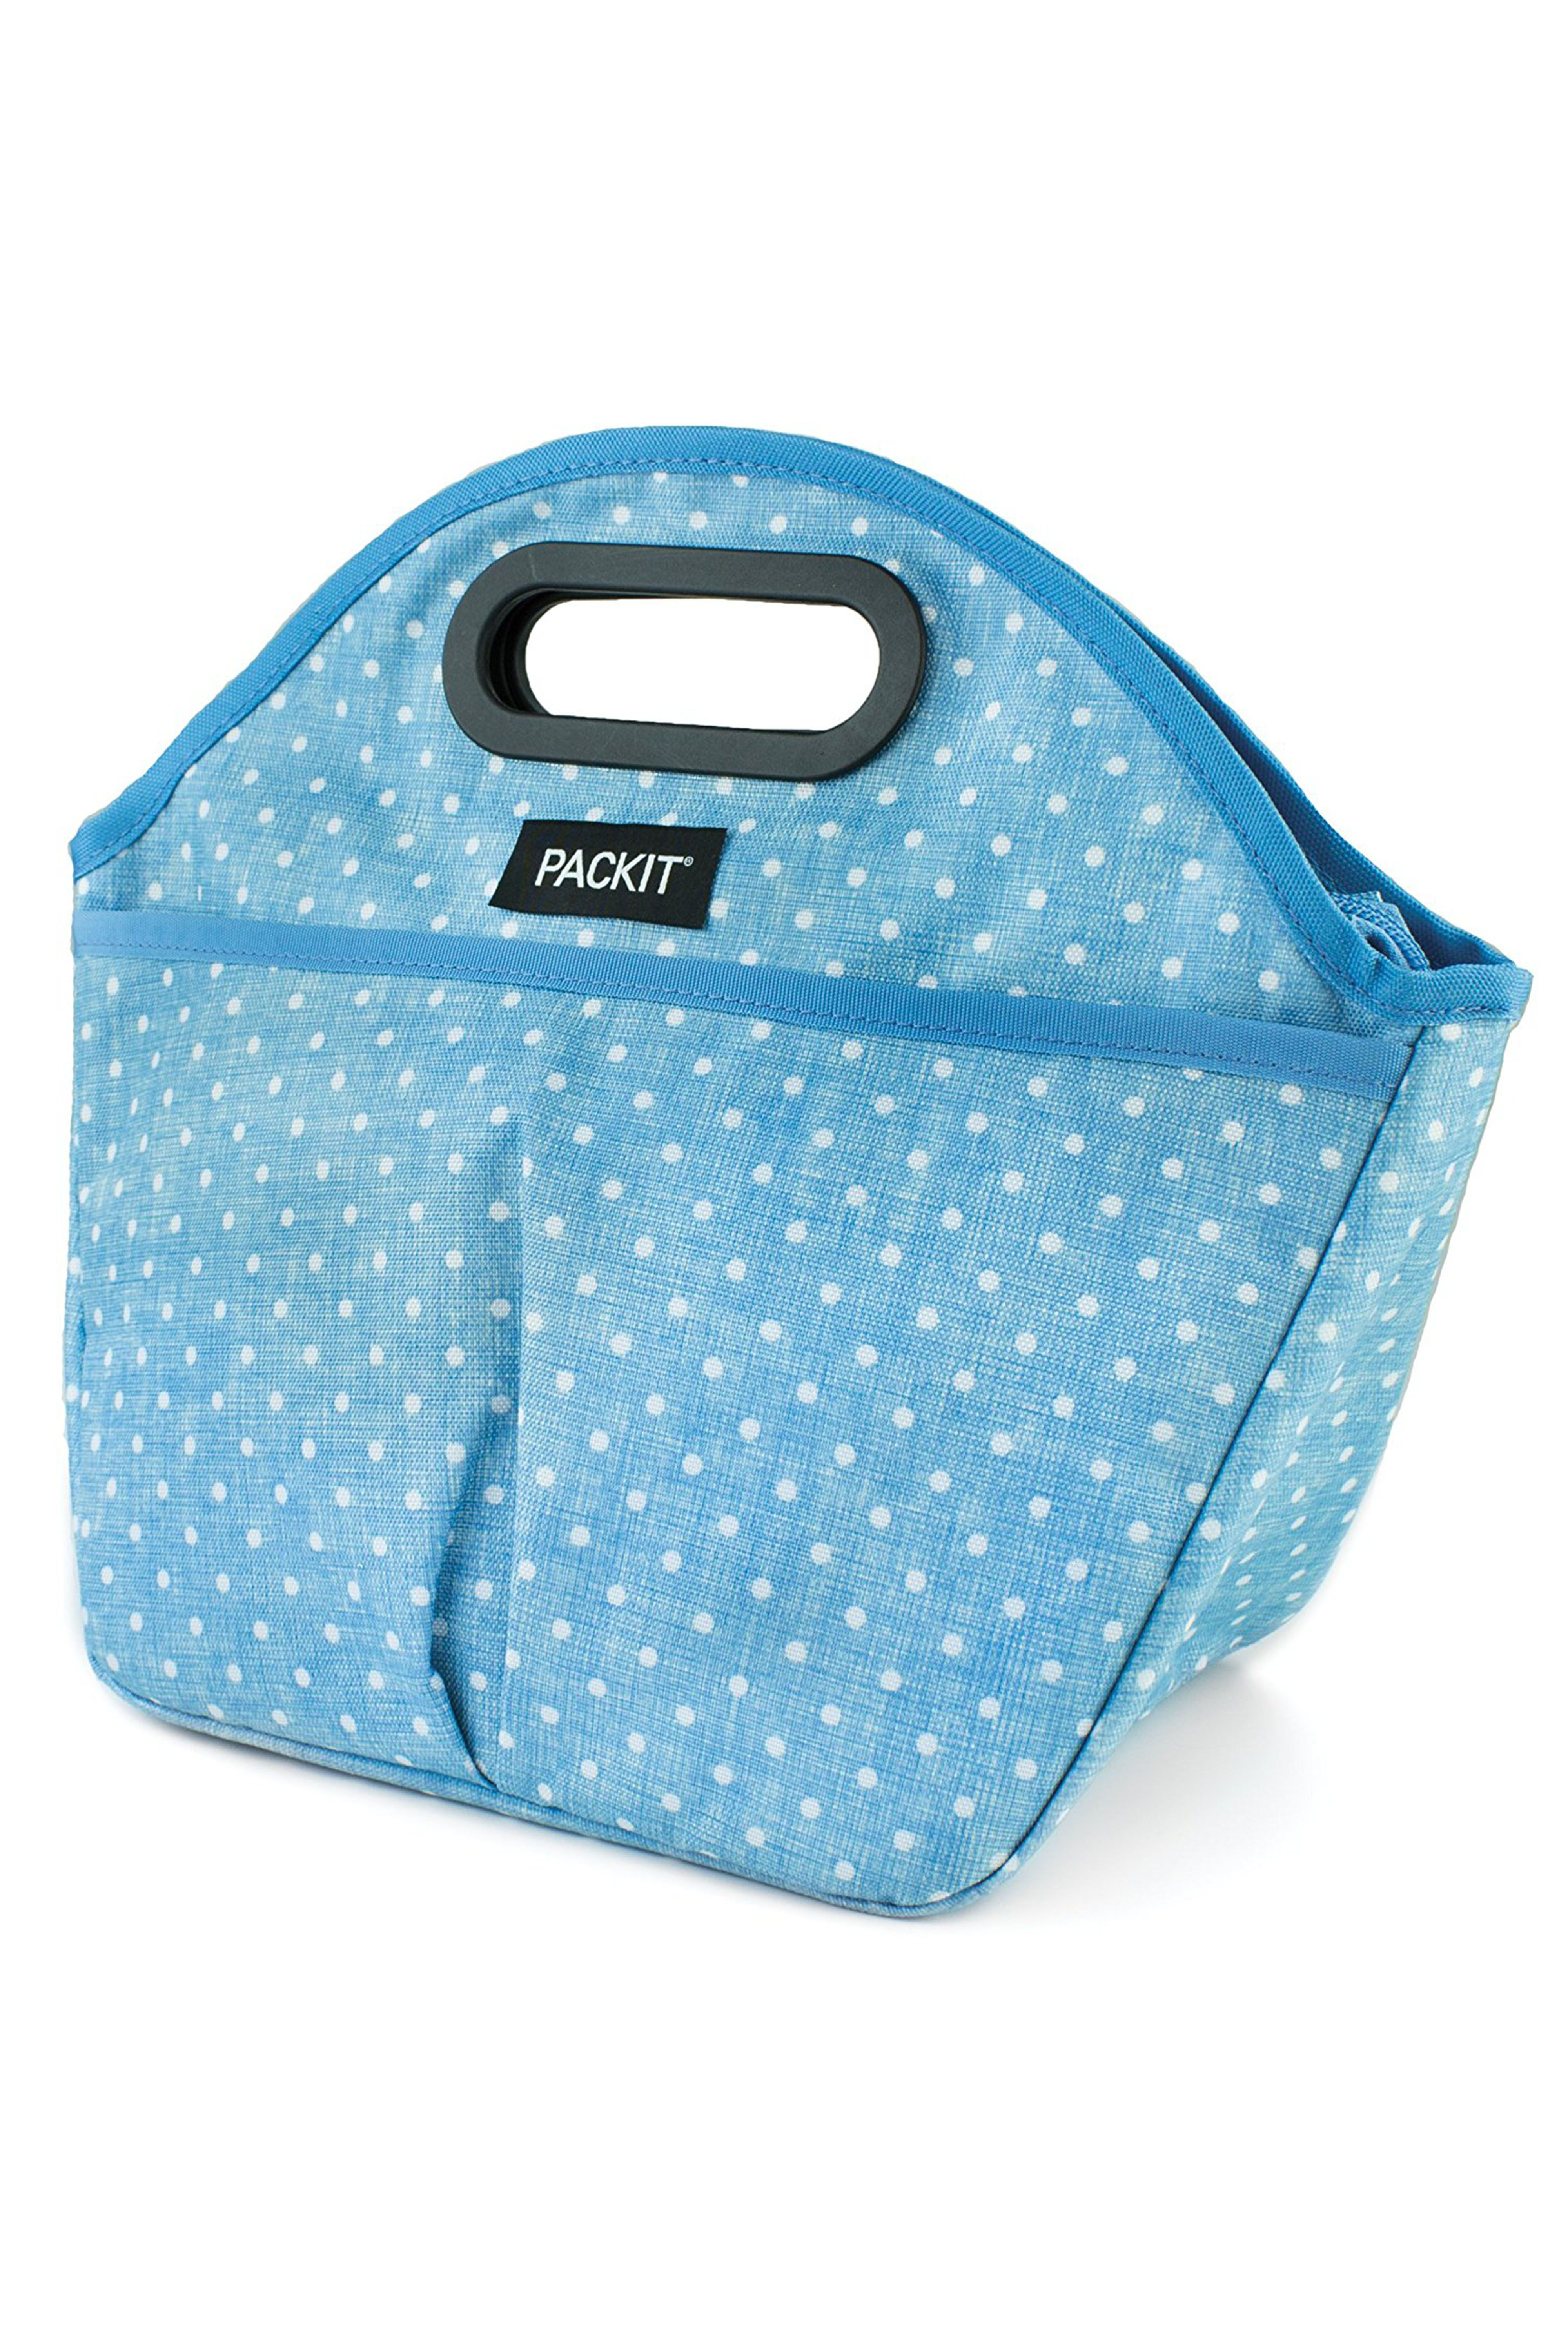 16 Best Kids Lunch Bo Bags 2018 Top Rated School Box Reviews